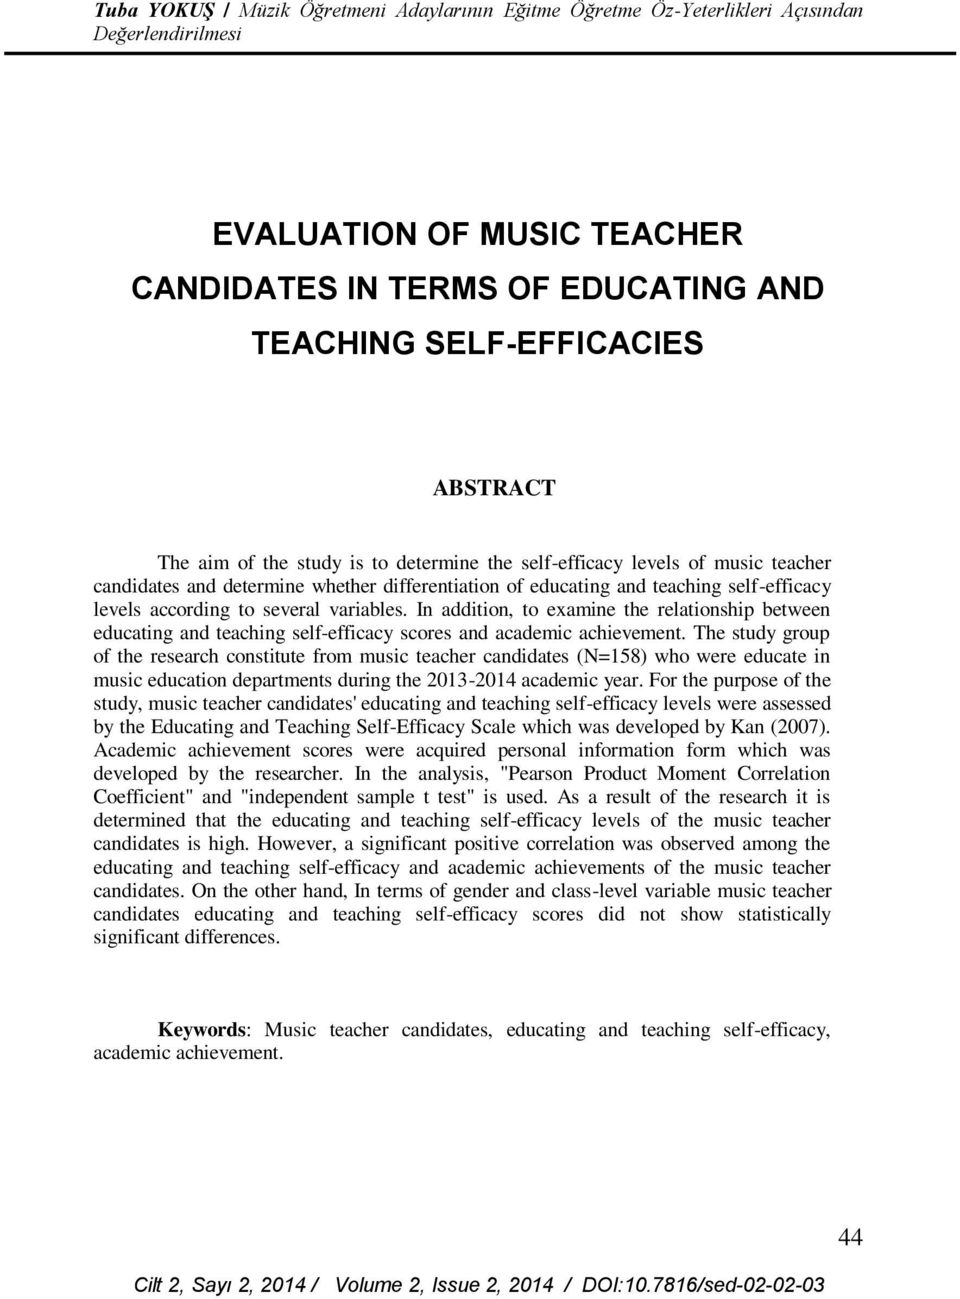 In addition, to examine the relationship between educating and teaching self-efficacy scores and academic achievement.